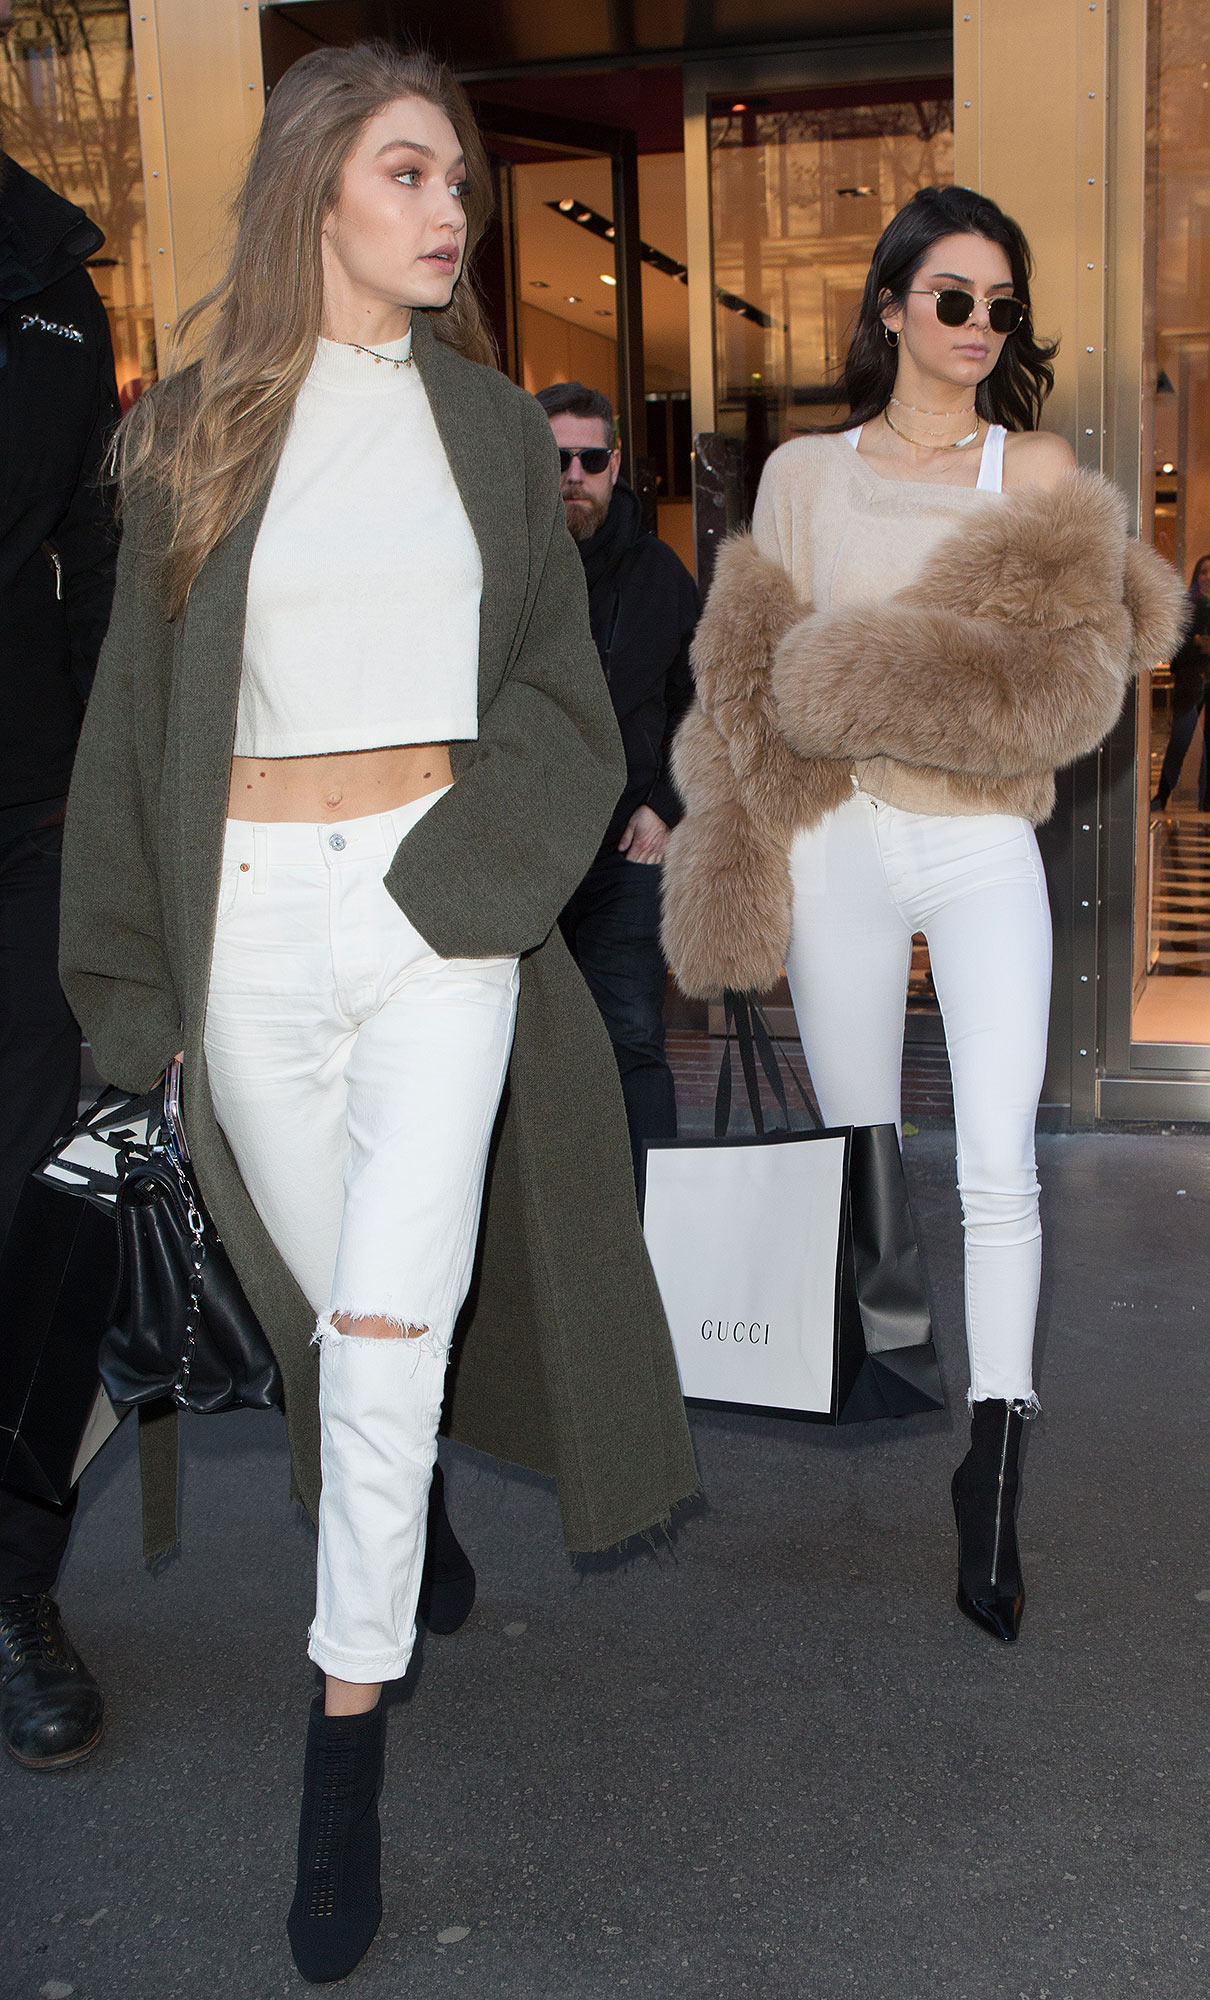 52241998 Models Gigi Hadid and Kendall Jenner are spotted shopping at the Gucci Store in Paris, France on November 28, 2016. The famous friends are in town for the 2016 Victoria's Secret Fashion Show. FameFlynet, Inc - Beverly Hills, CA, USA - +1 (310) 505-9876 RESTRICTIONS APPLY: USA ONLY